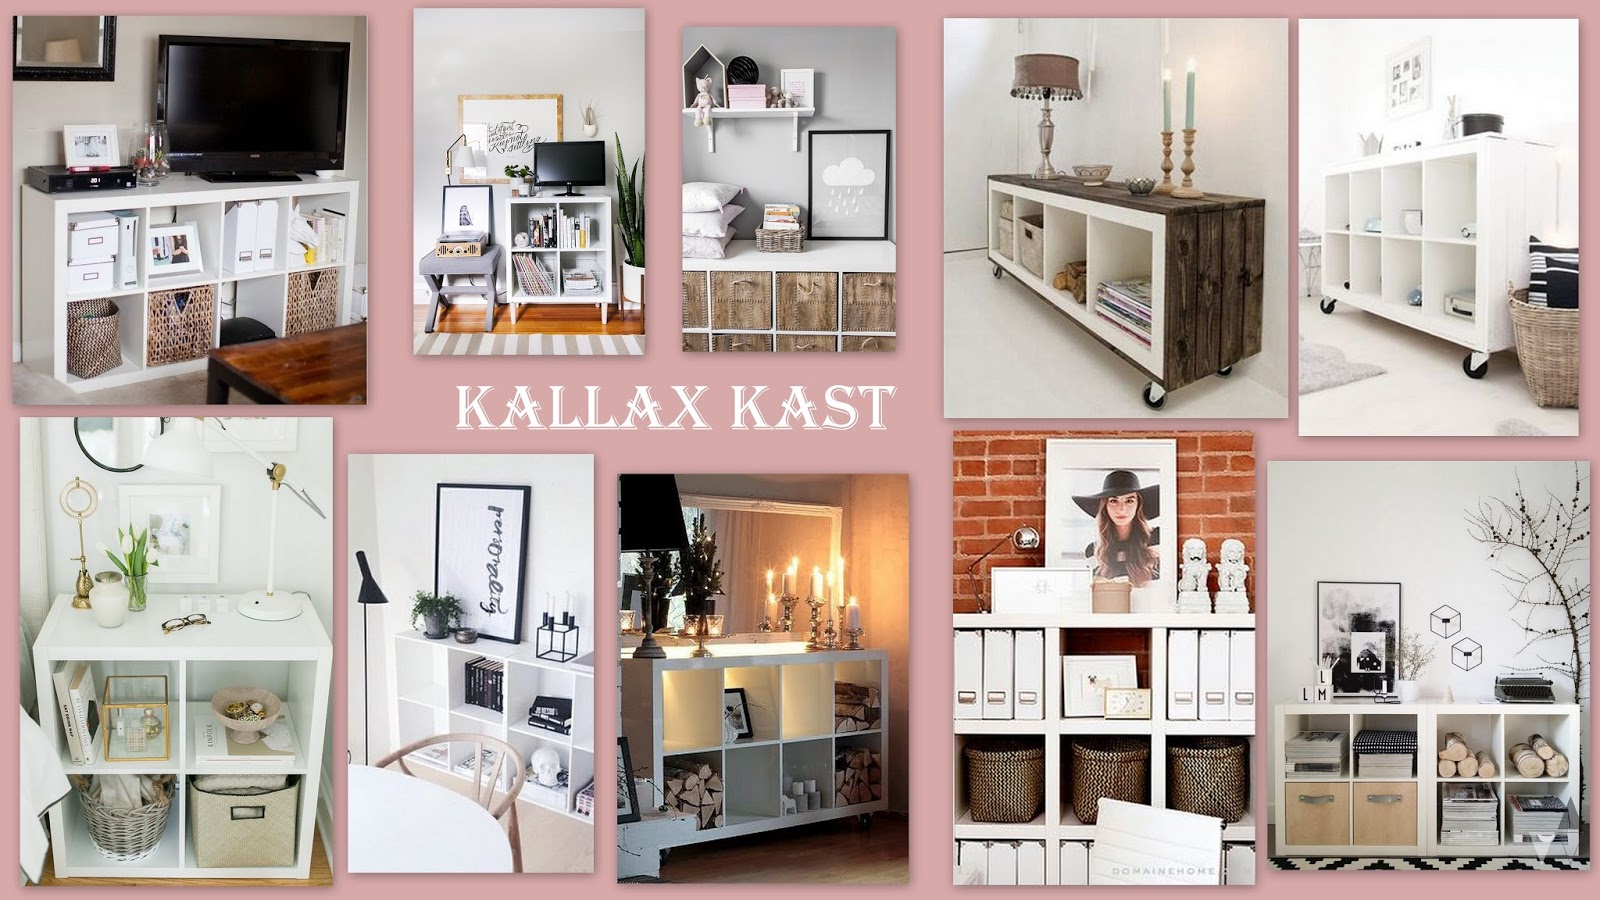 INTERIEUR: KALLAX KAST | Irispirationlife